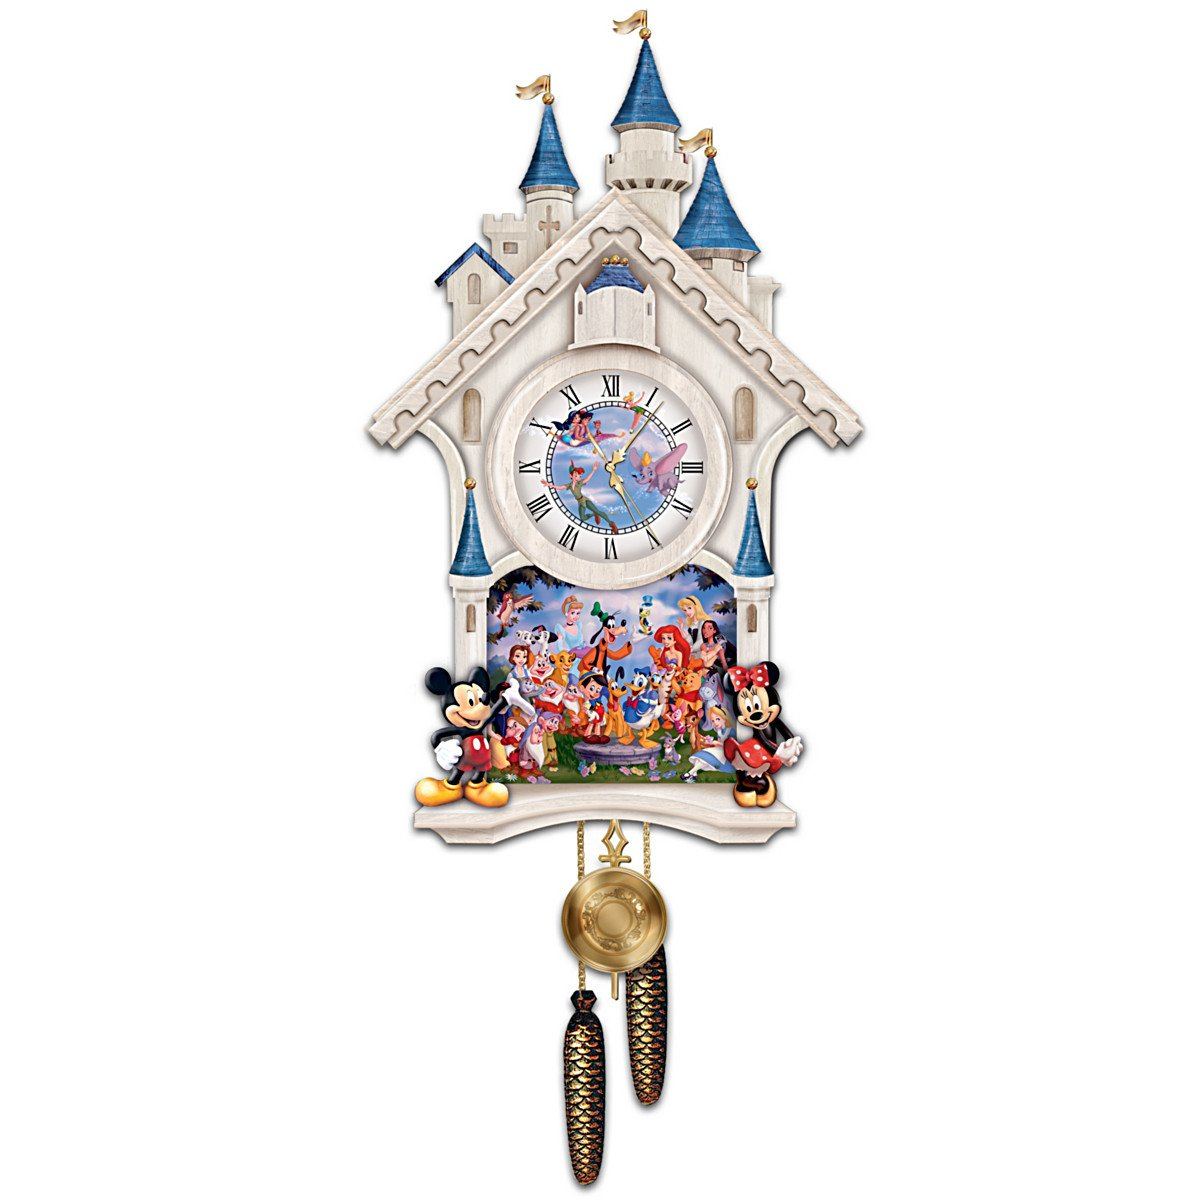 The Bradford Exchange - Disney Character Cuckoo Clock 'Happiest Of Times' - Inspired by Cinderella's Castle